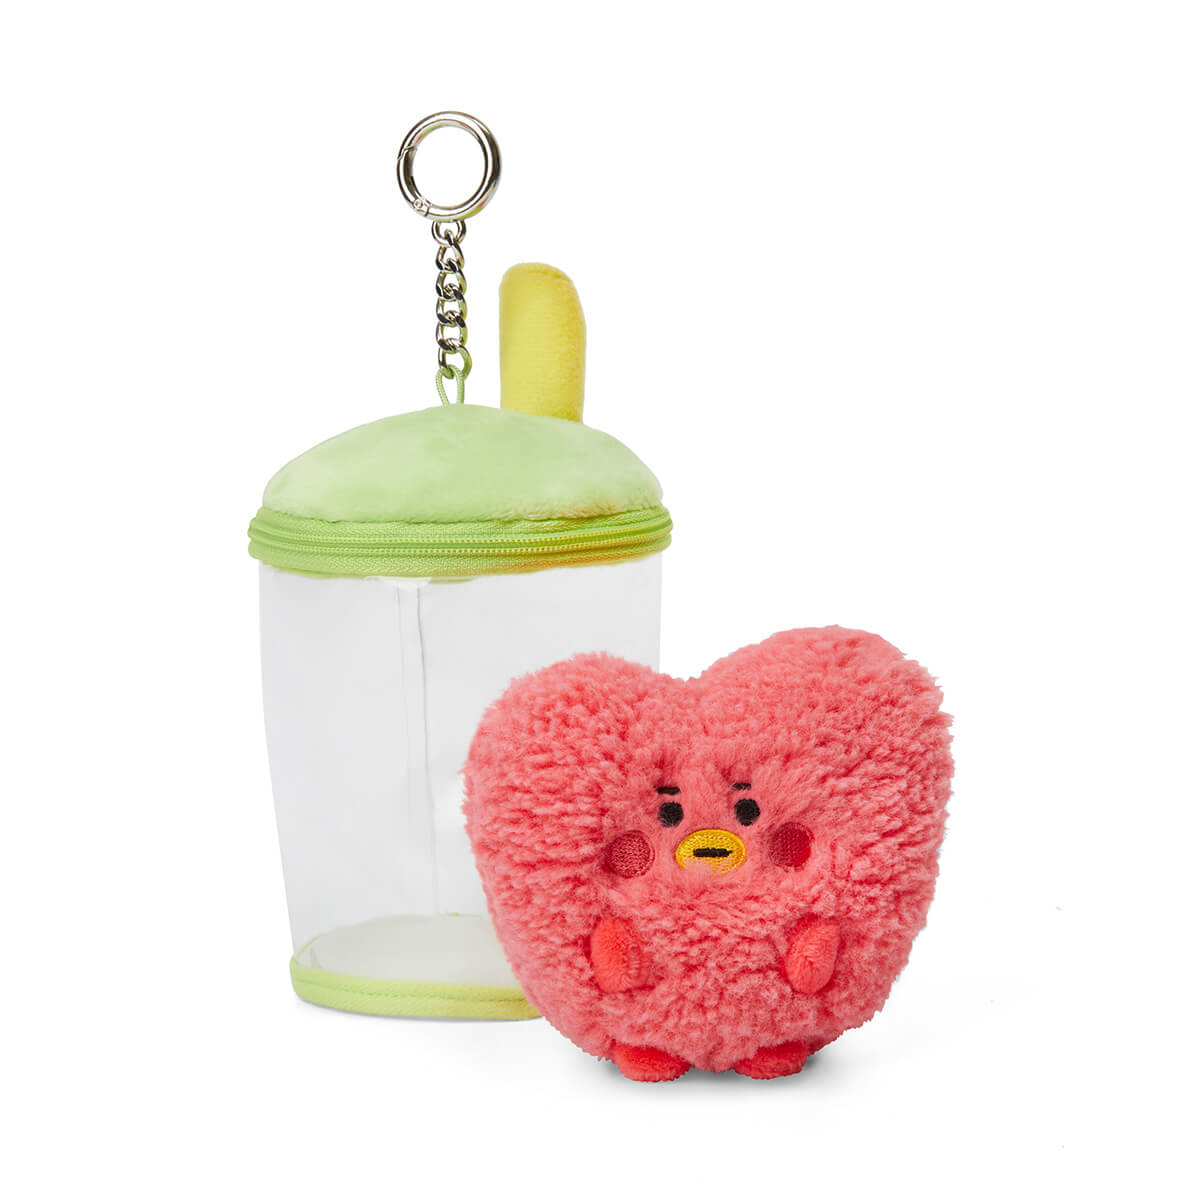 BT21 TATA BABY Boucle Bubble Tea Doll Bag Charm